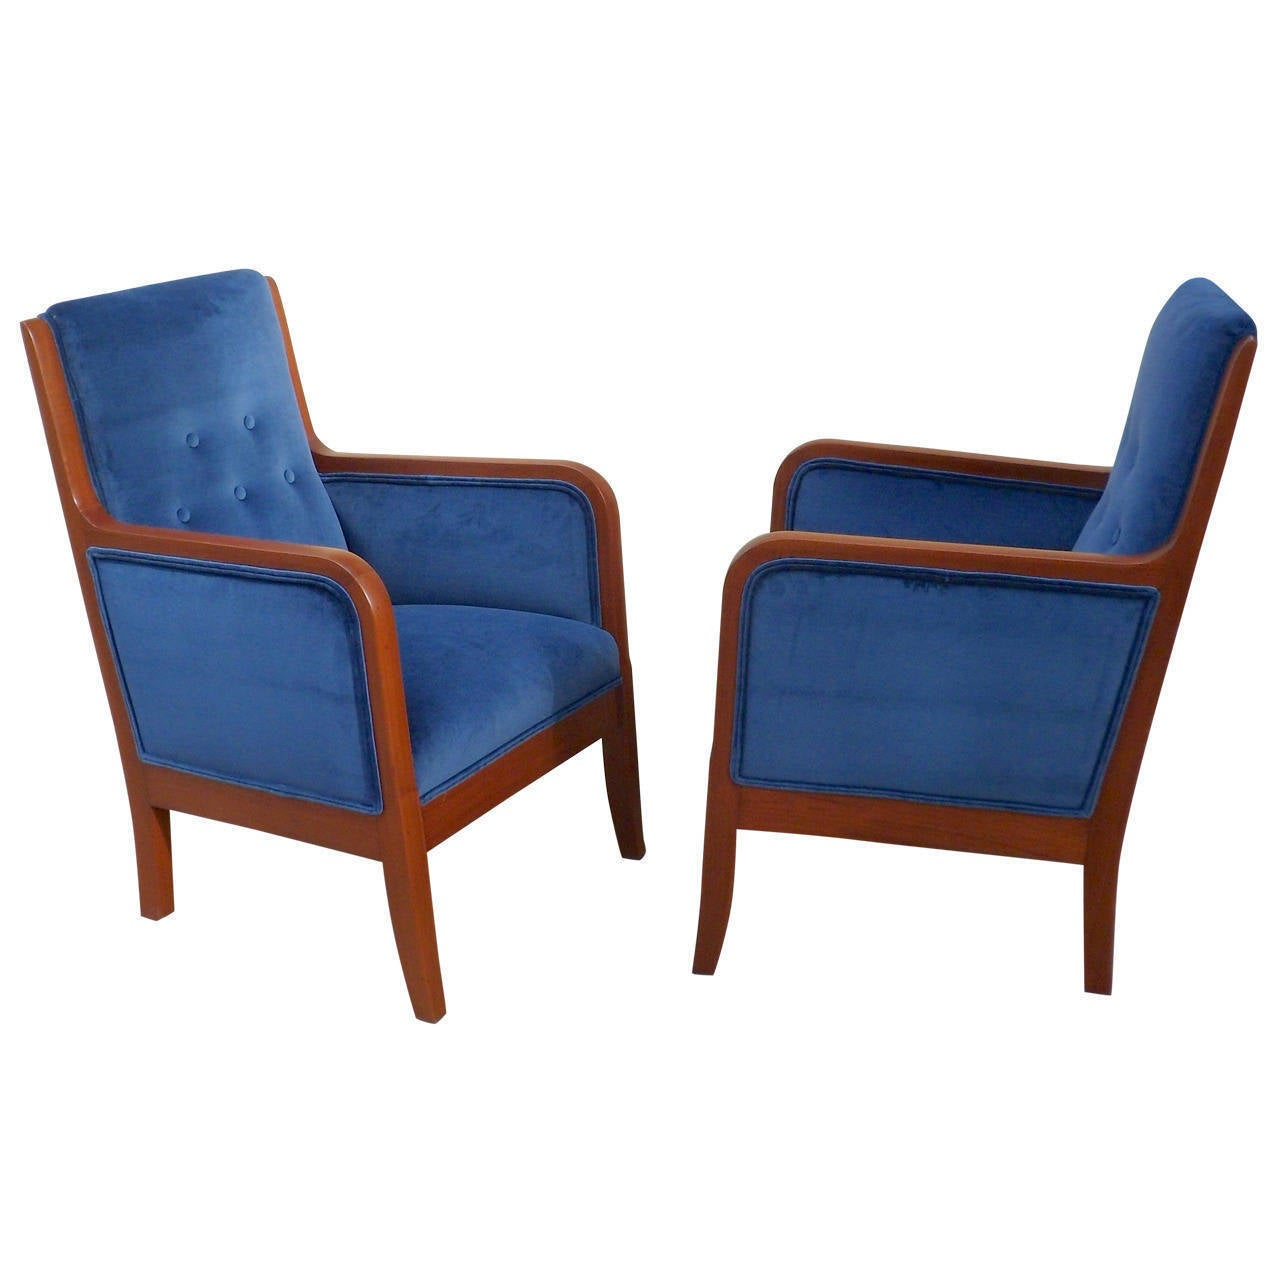 Small Arm Chairs Pair Of Small Scale Swedish Art Deco Armchairs Circa 1920